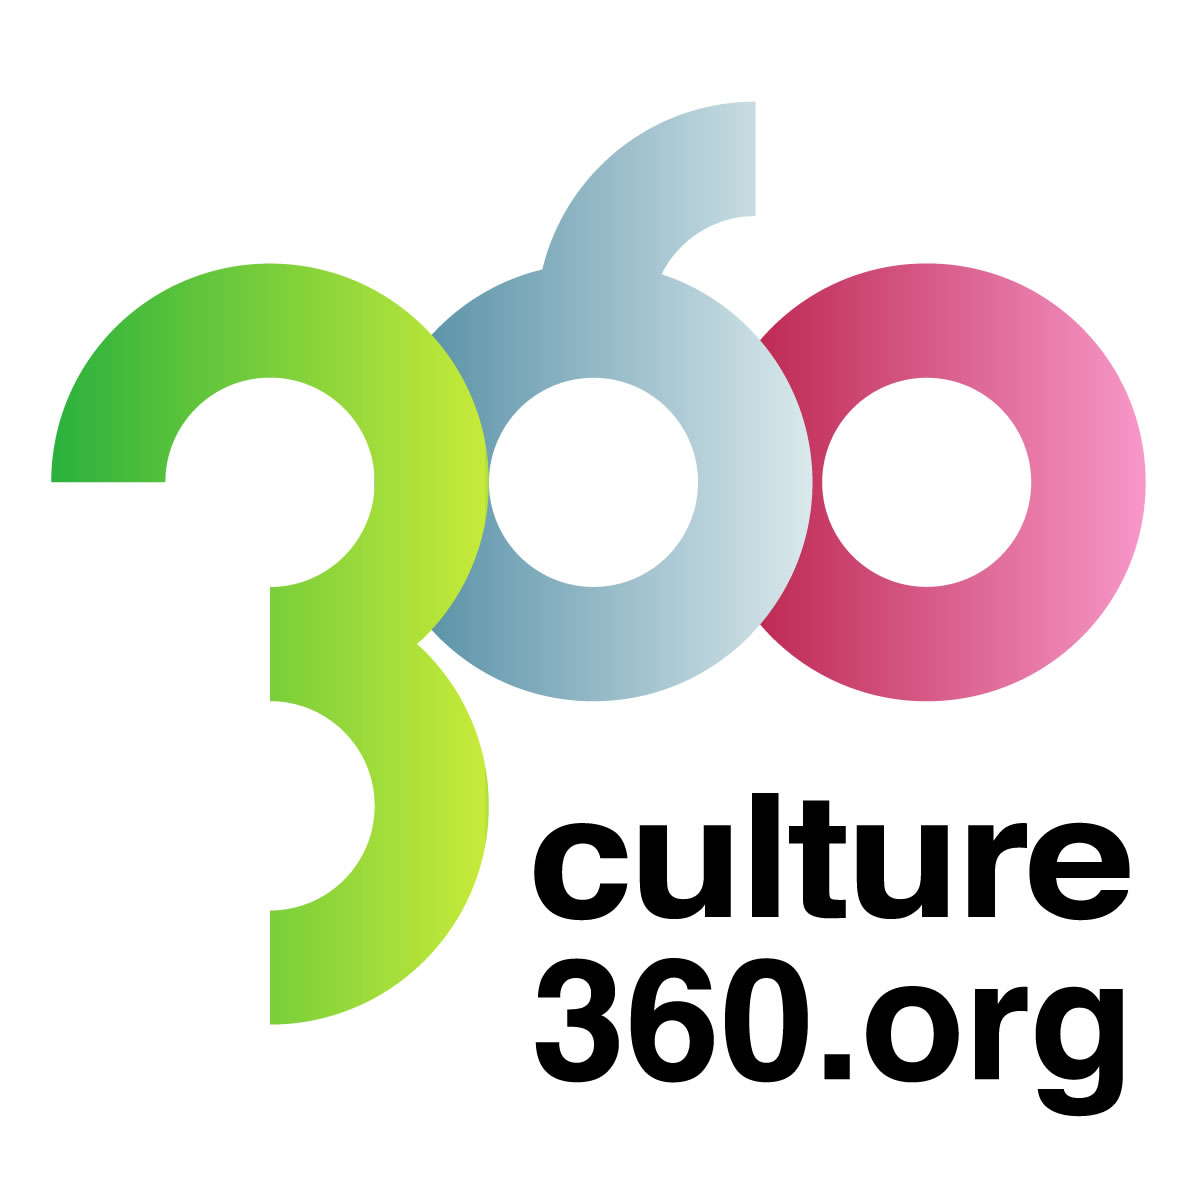 c360-logo-colour-square-web